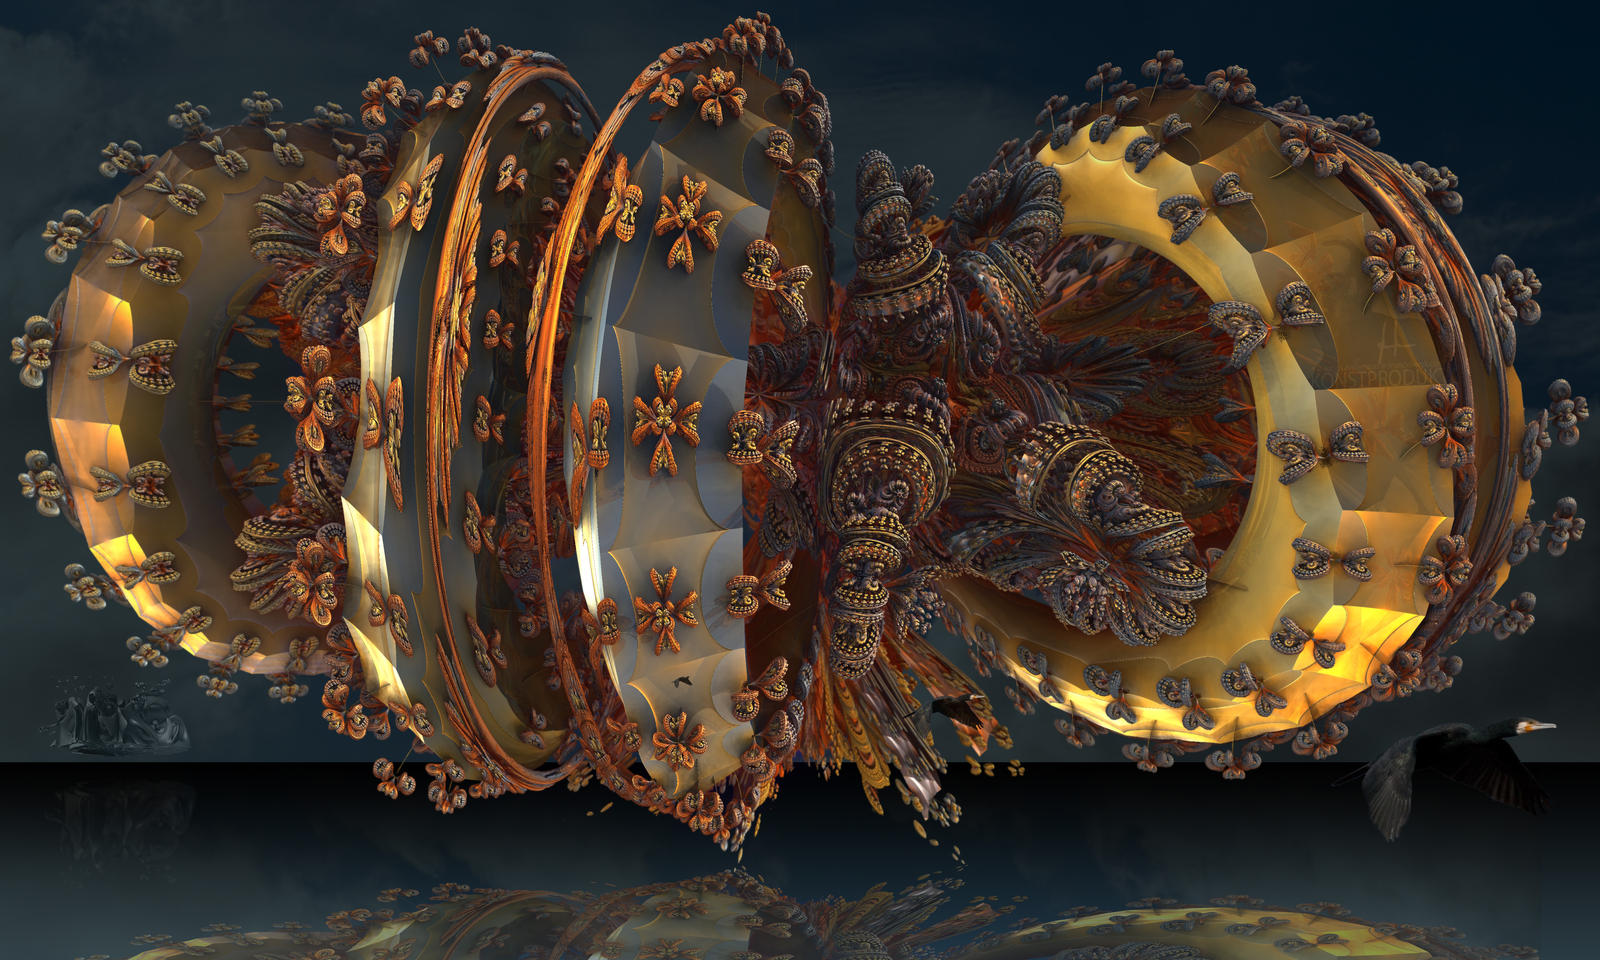 Baroque Furniture Tornado by MANDELWERK